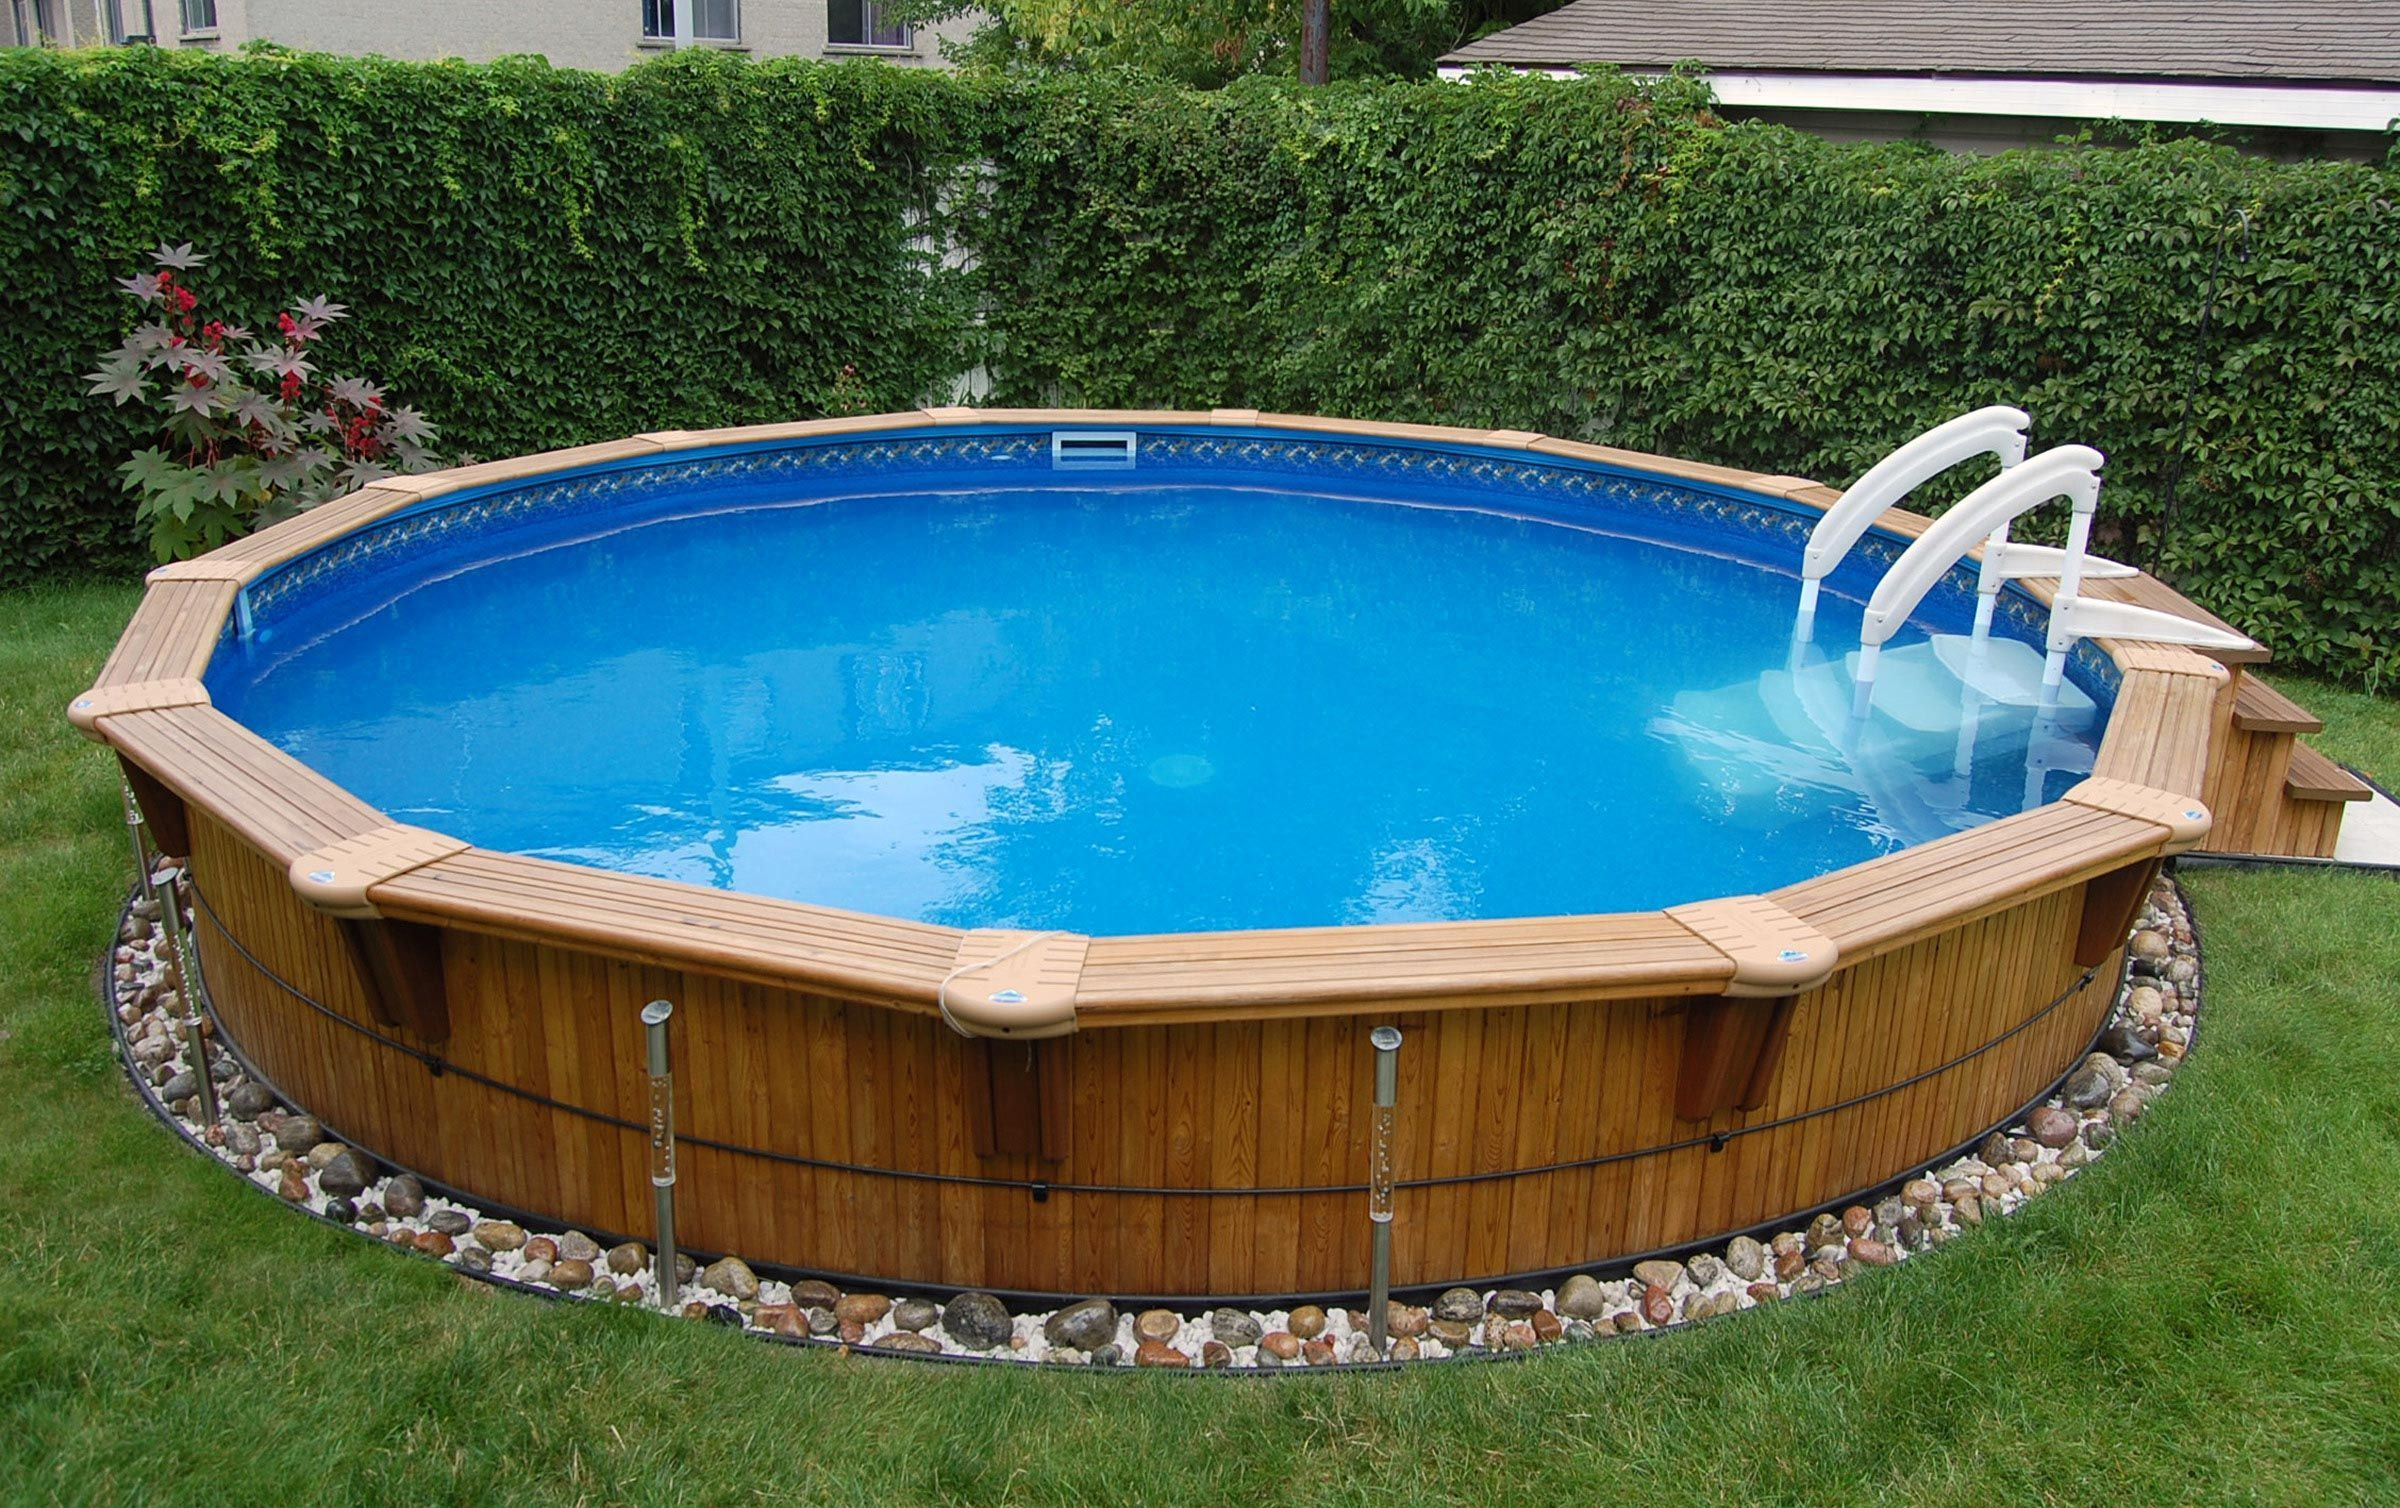 aqua wood round semi in ground wood pool outdoor living pinterest piscine piscine bois. Black Bedroom Furniture Sets. Home Design Ideas